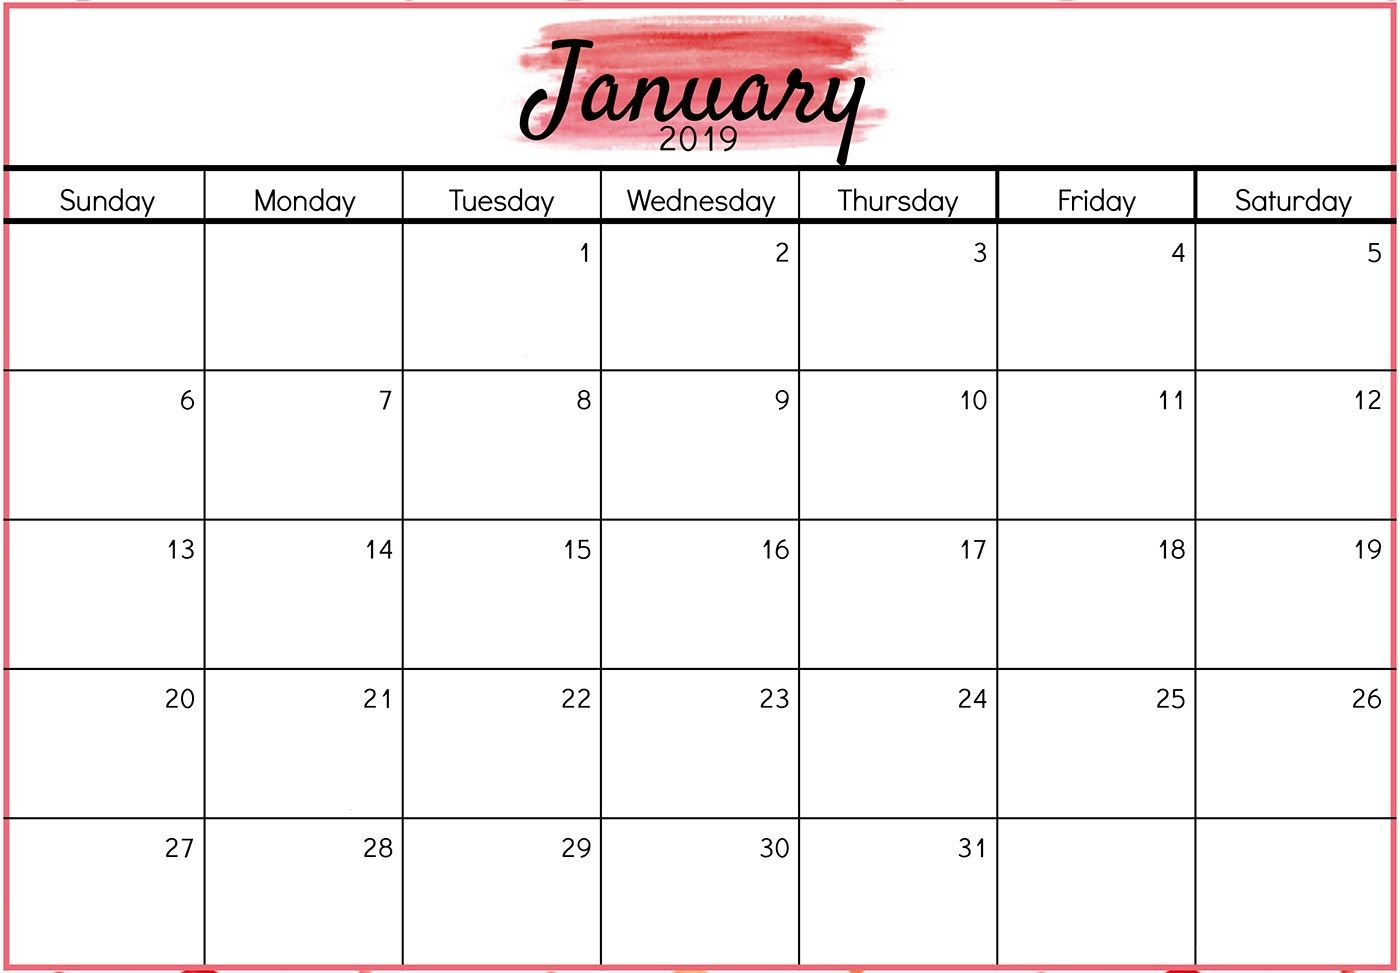 Academic Calendar 2019 January For Landscape And Vertical